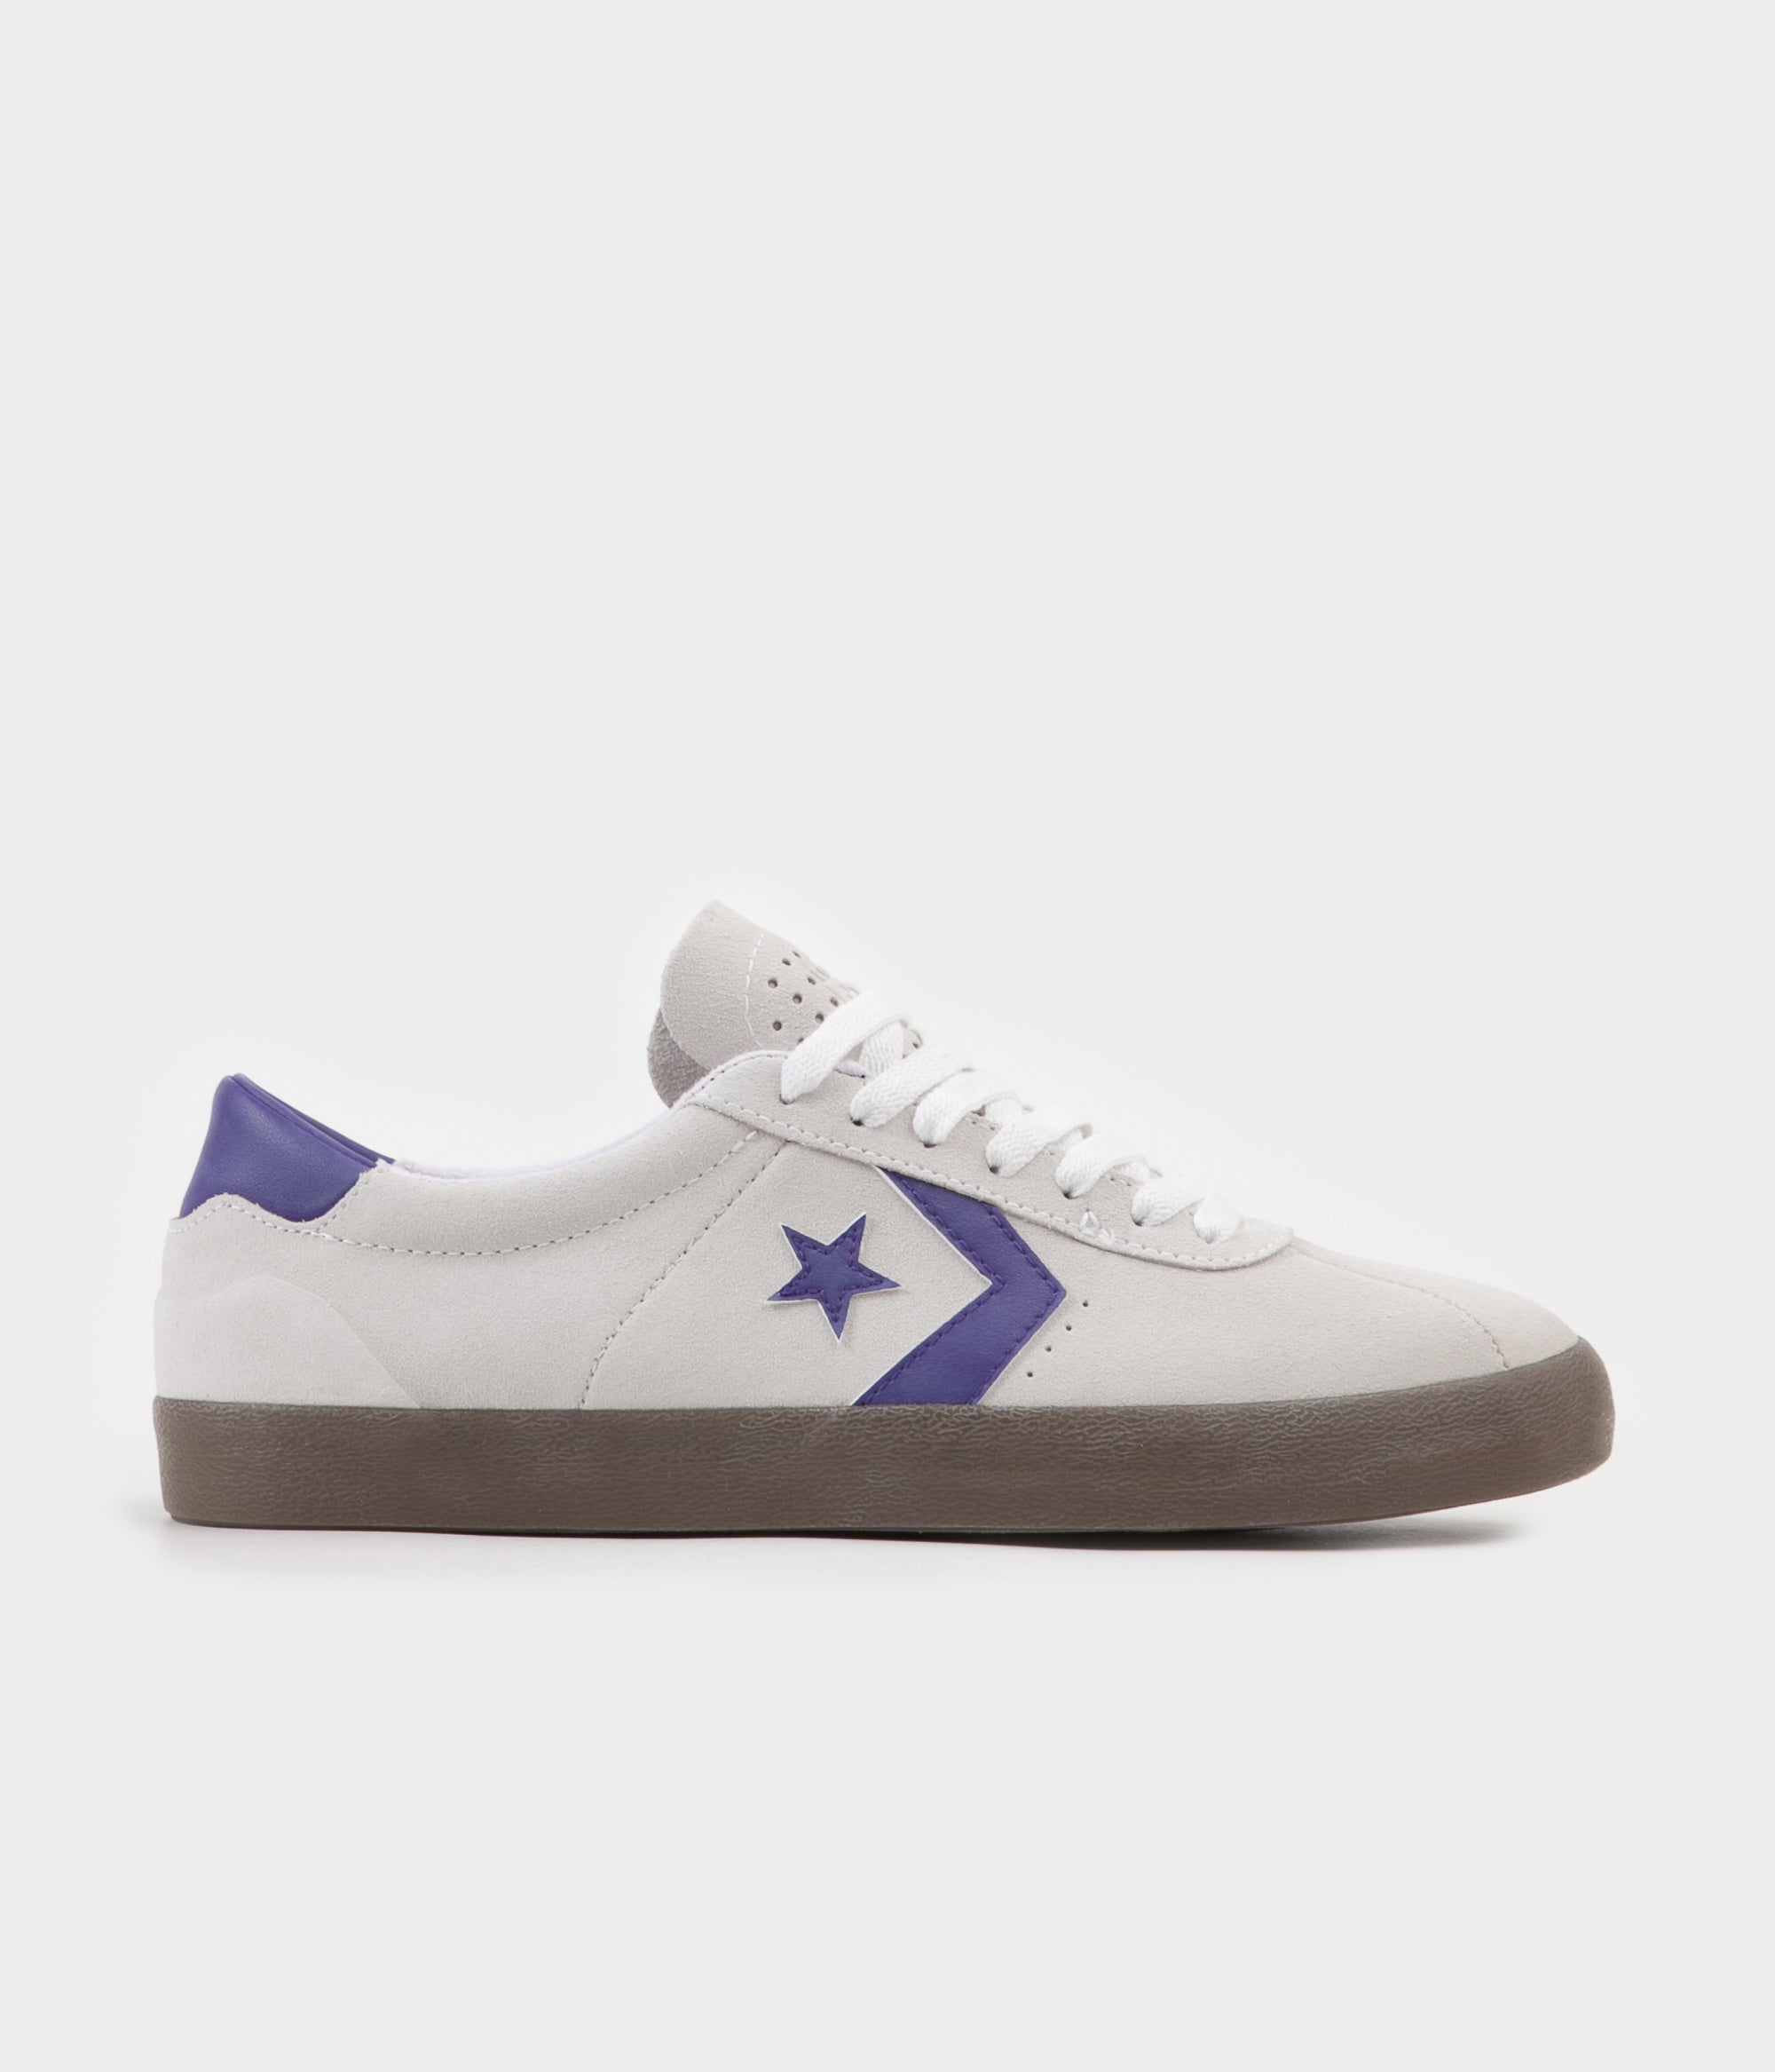 Converse Breakpoint Pro Ox Shoes - White / Court Purple / Gum